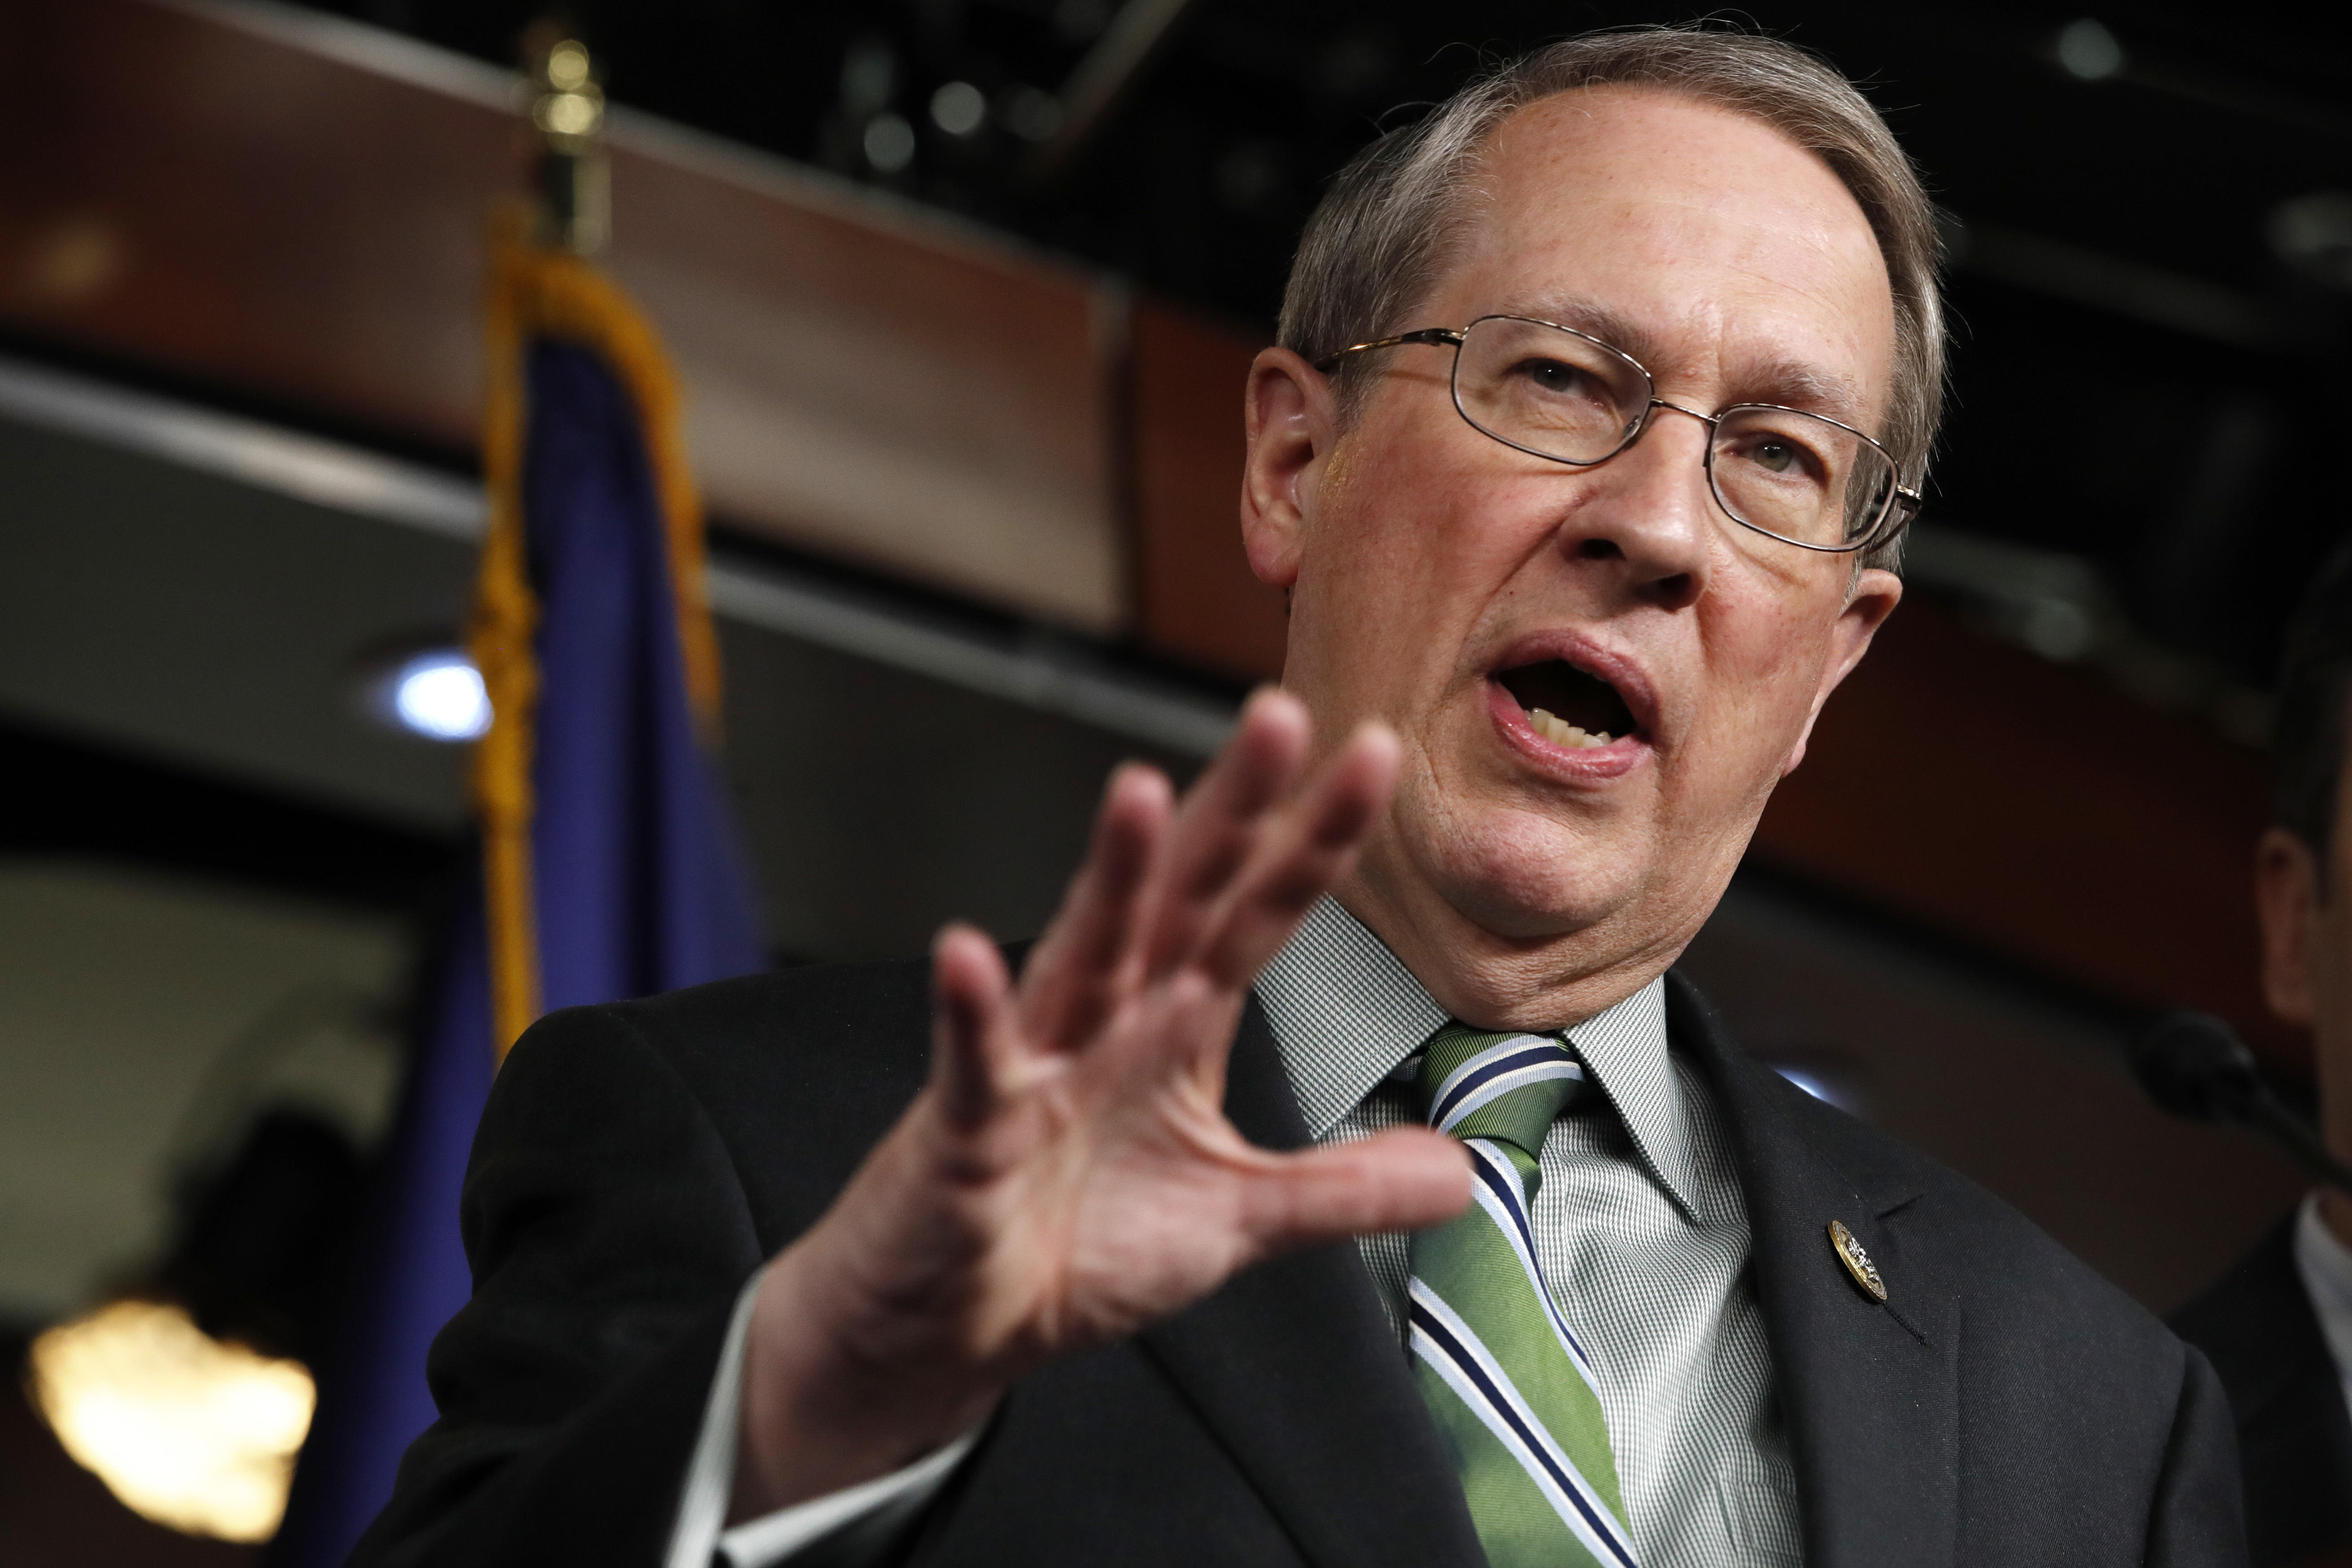 House GOP members unveil sweeping immigration reform bill